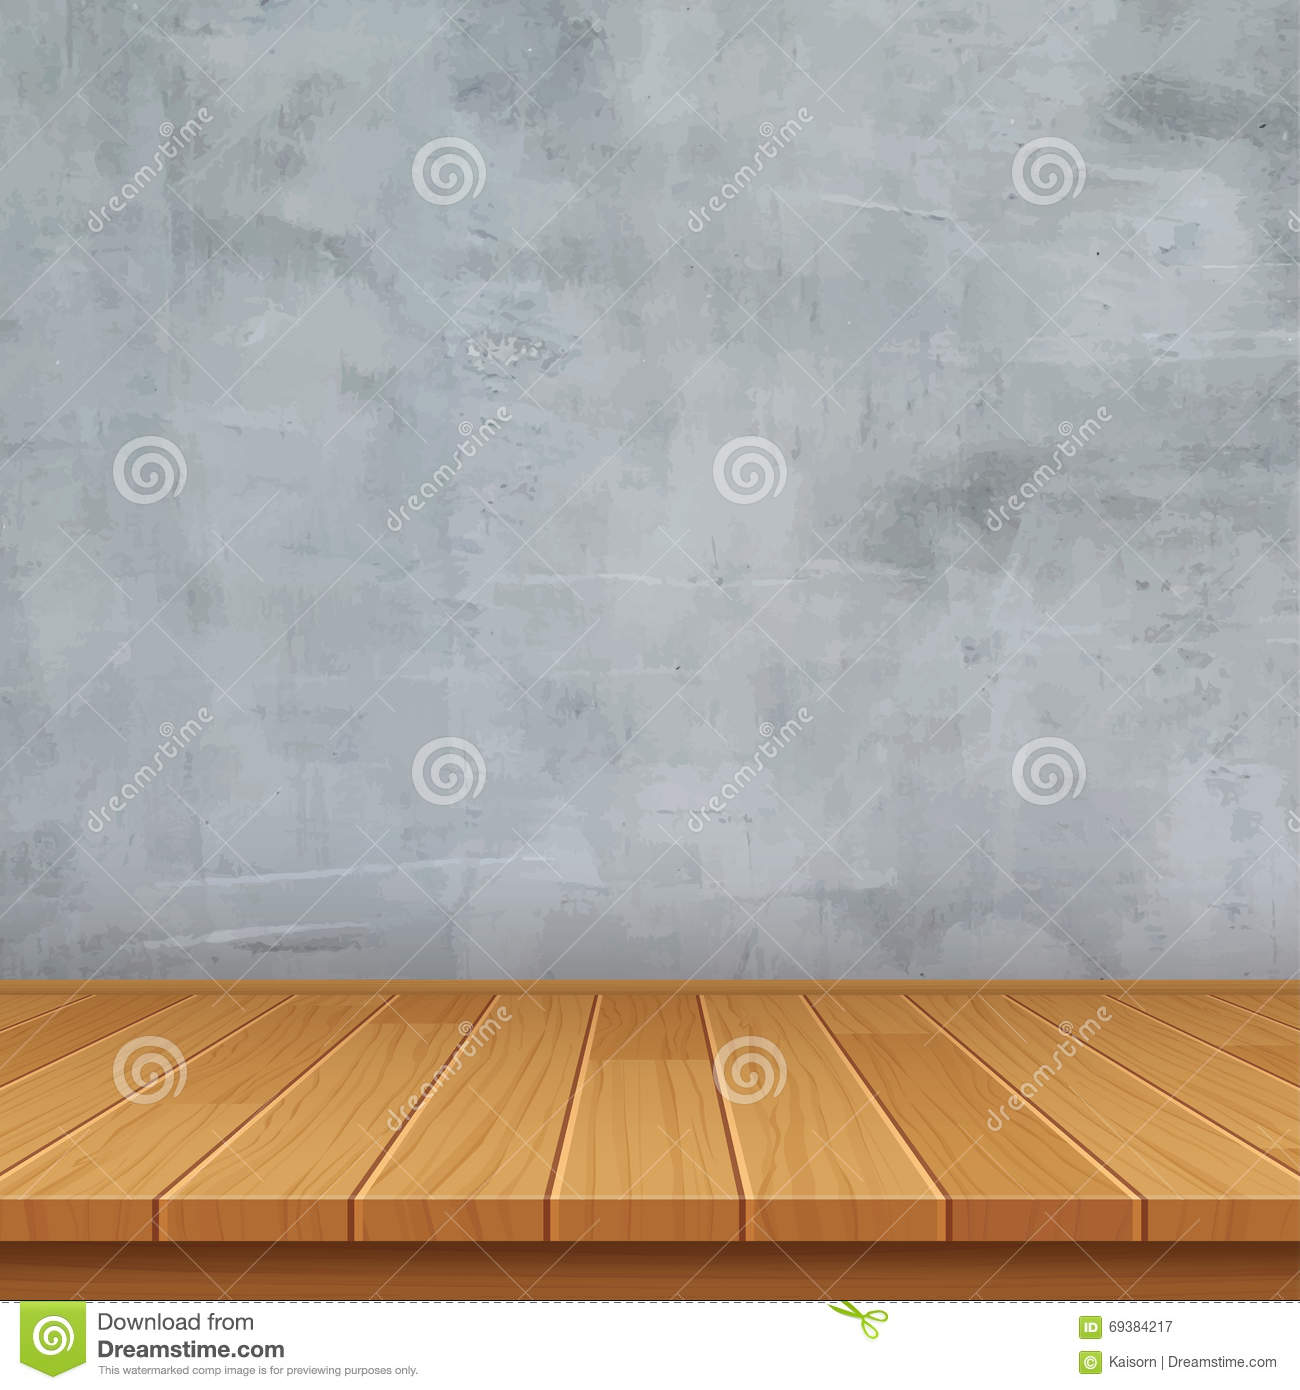 Empty Room With Concrete Wall And Wooden Floor Stock Vector ...